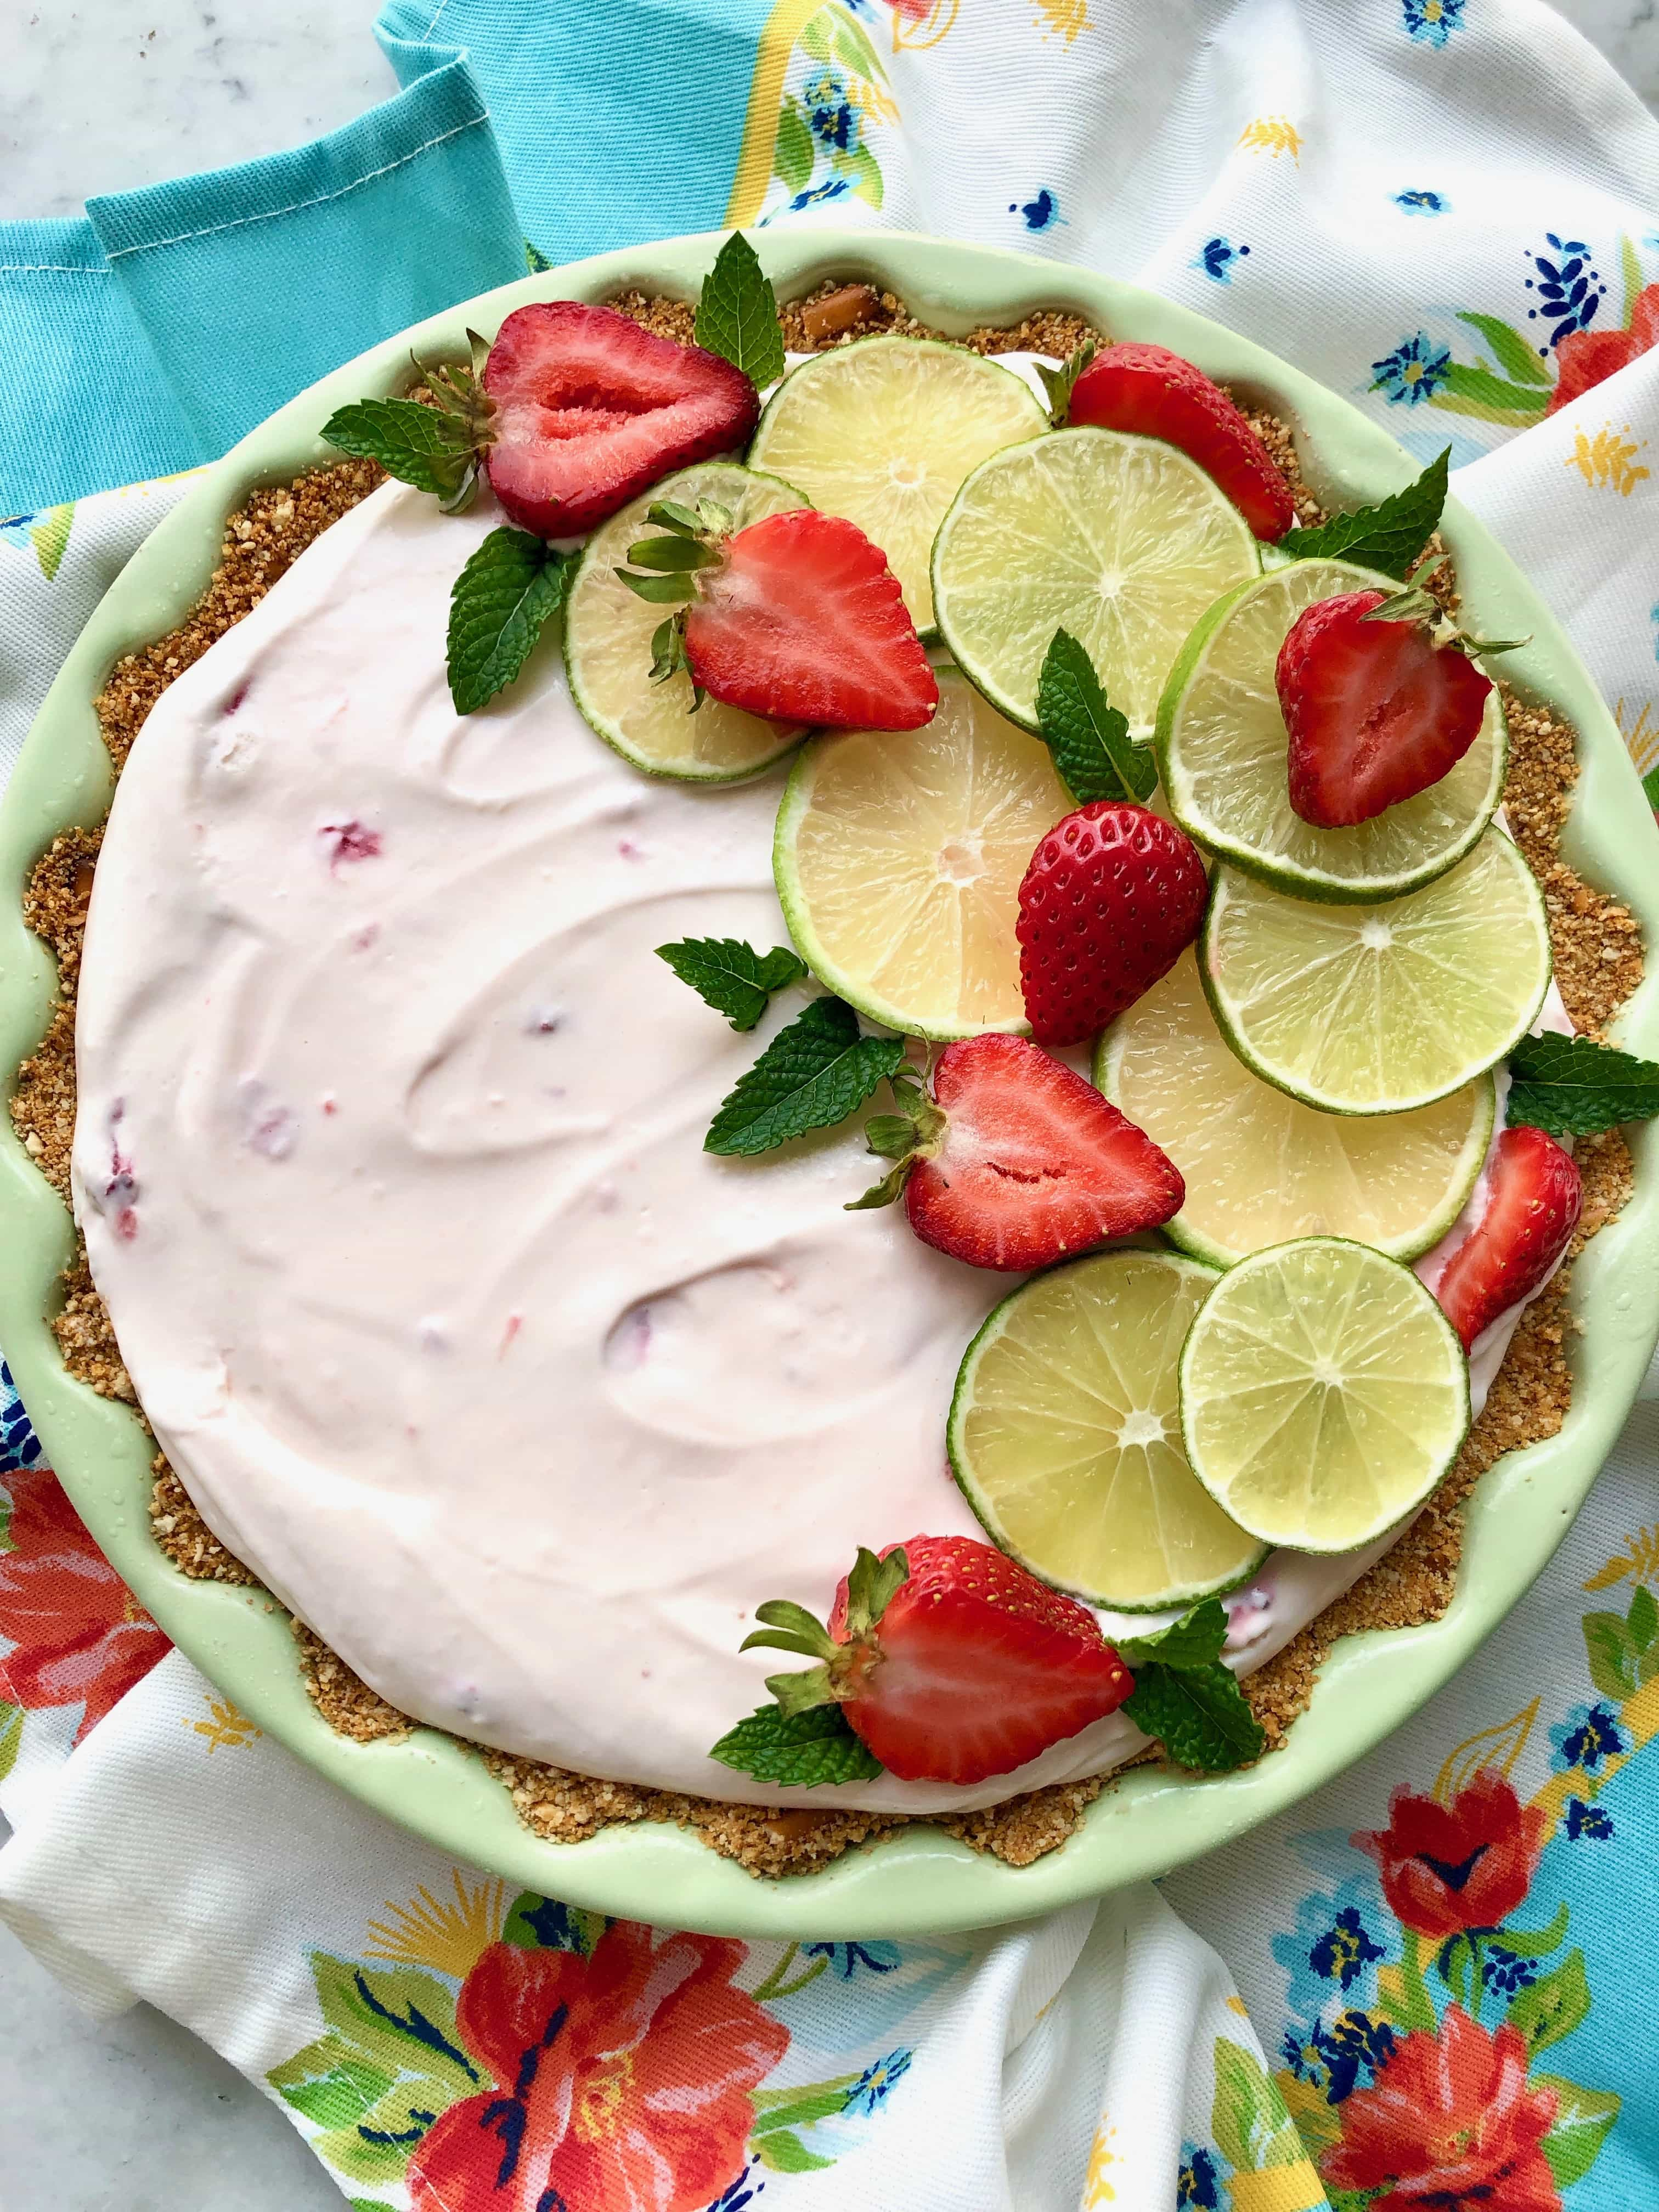 strawberry margarita pie in a green pie plate on a floral towel